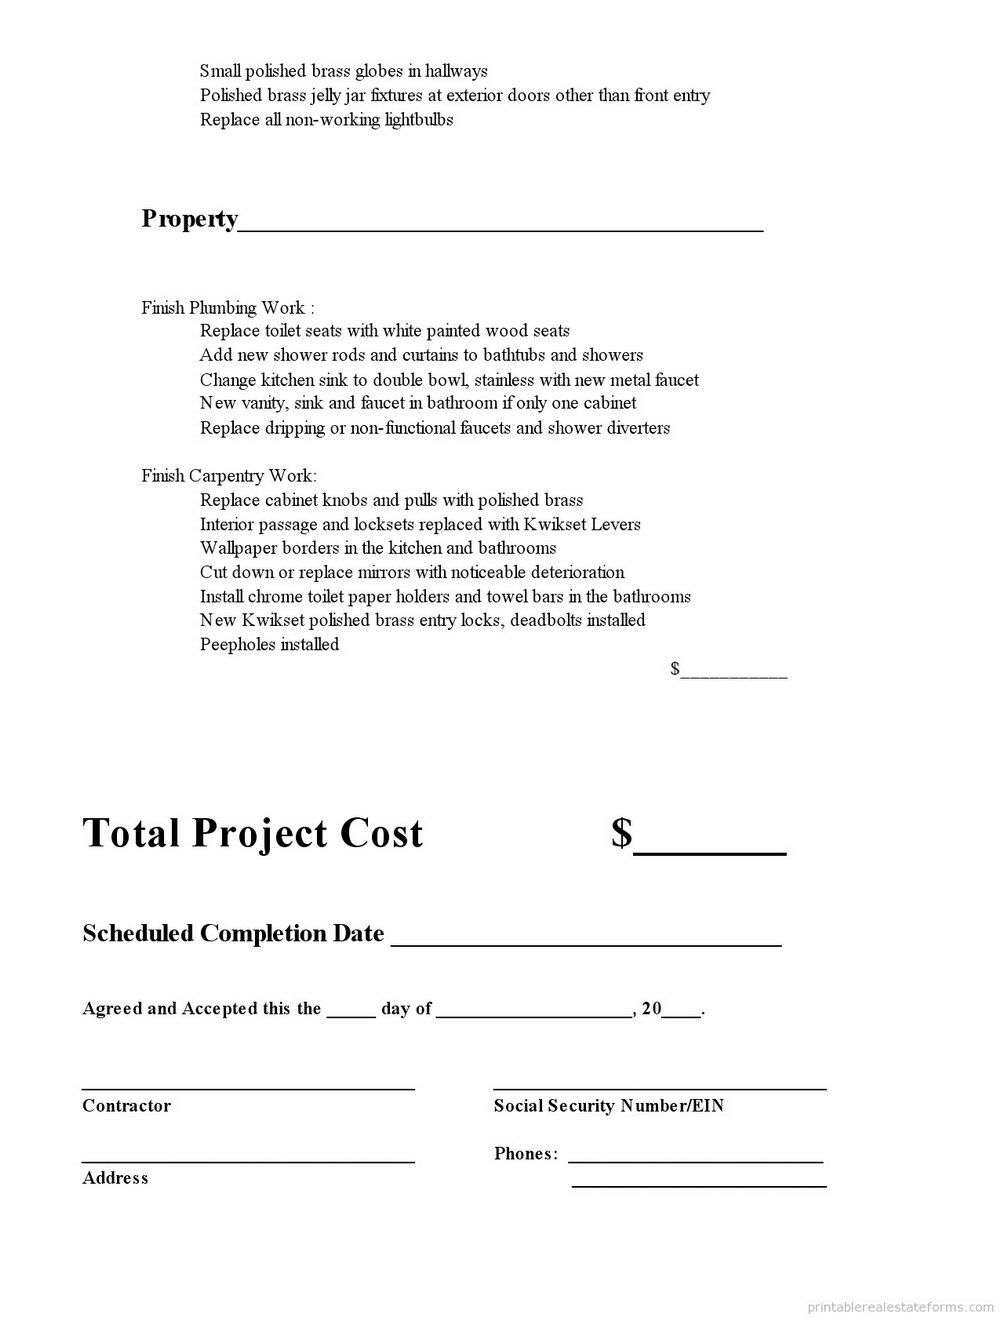 Profit Sharing Agreement Template Pdf